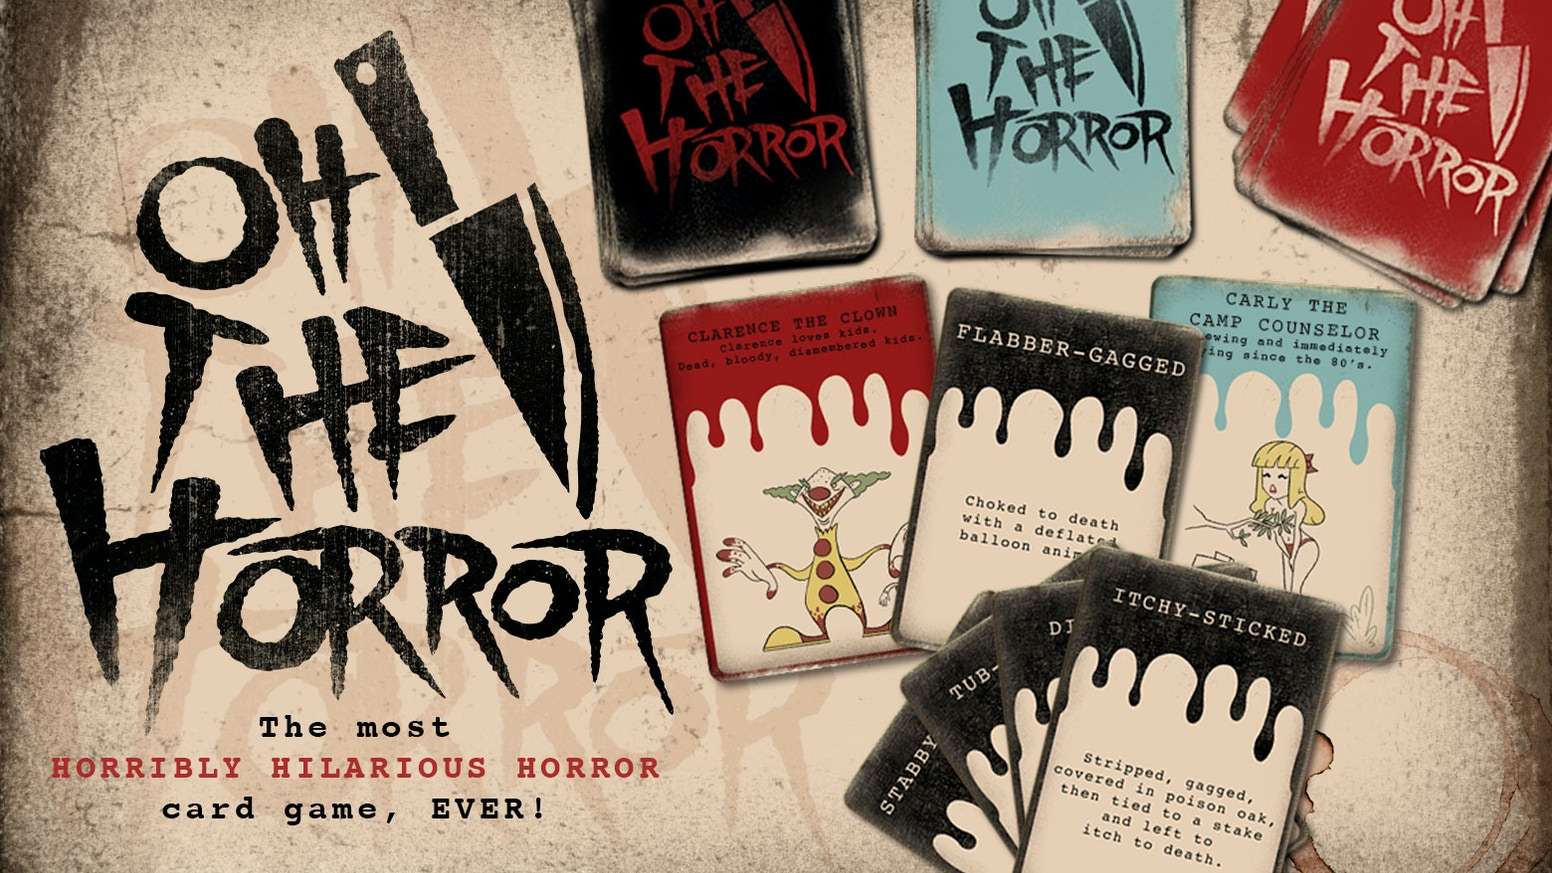 Oh, The Horror! by OH, the HORROR! — Kickstarter